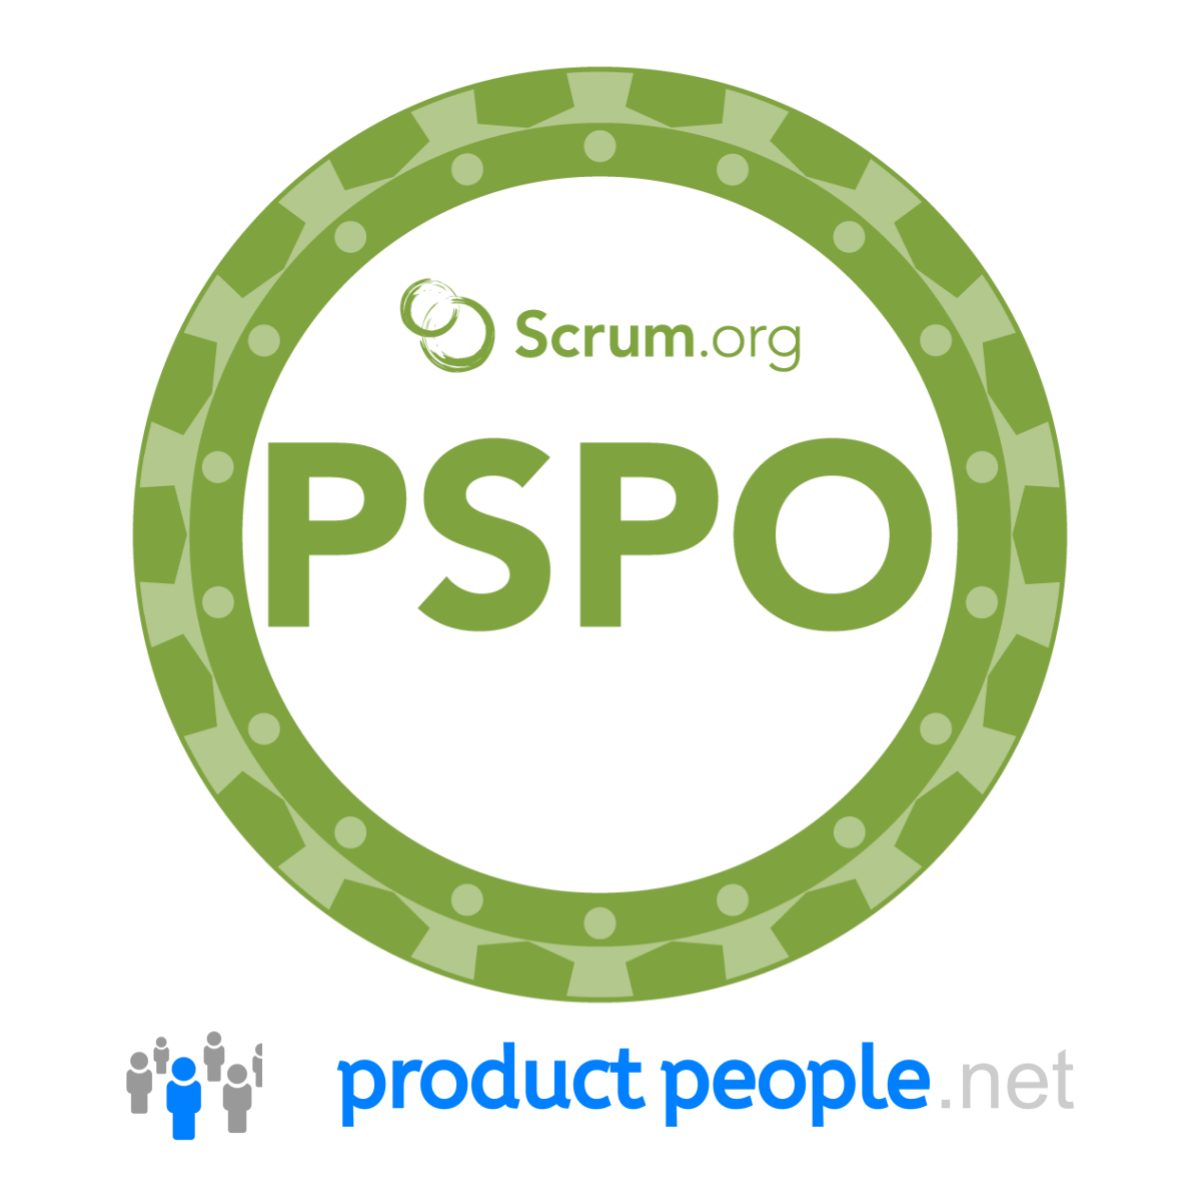 PSPO - Professional Scrum Product Owner - Scrum.org - powered by productpeople.net